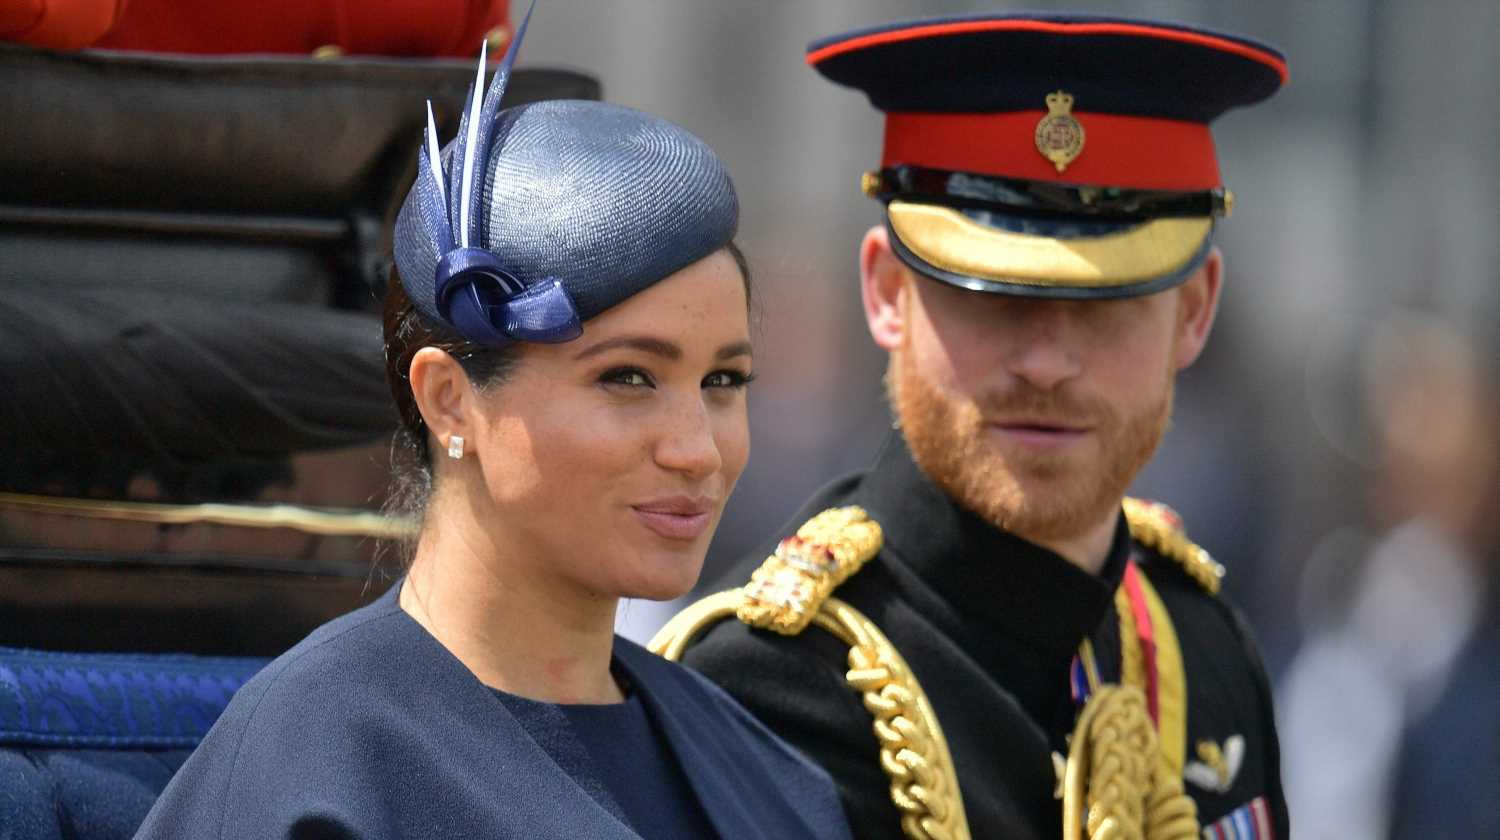 Duchess Meghan attends Trooping the Colour after skipping Trump visit, Prince Louis makes balcony debut